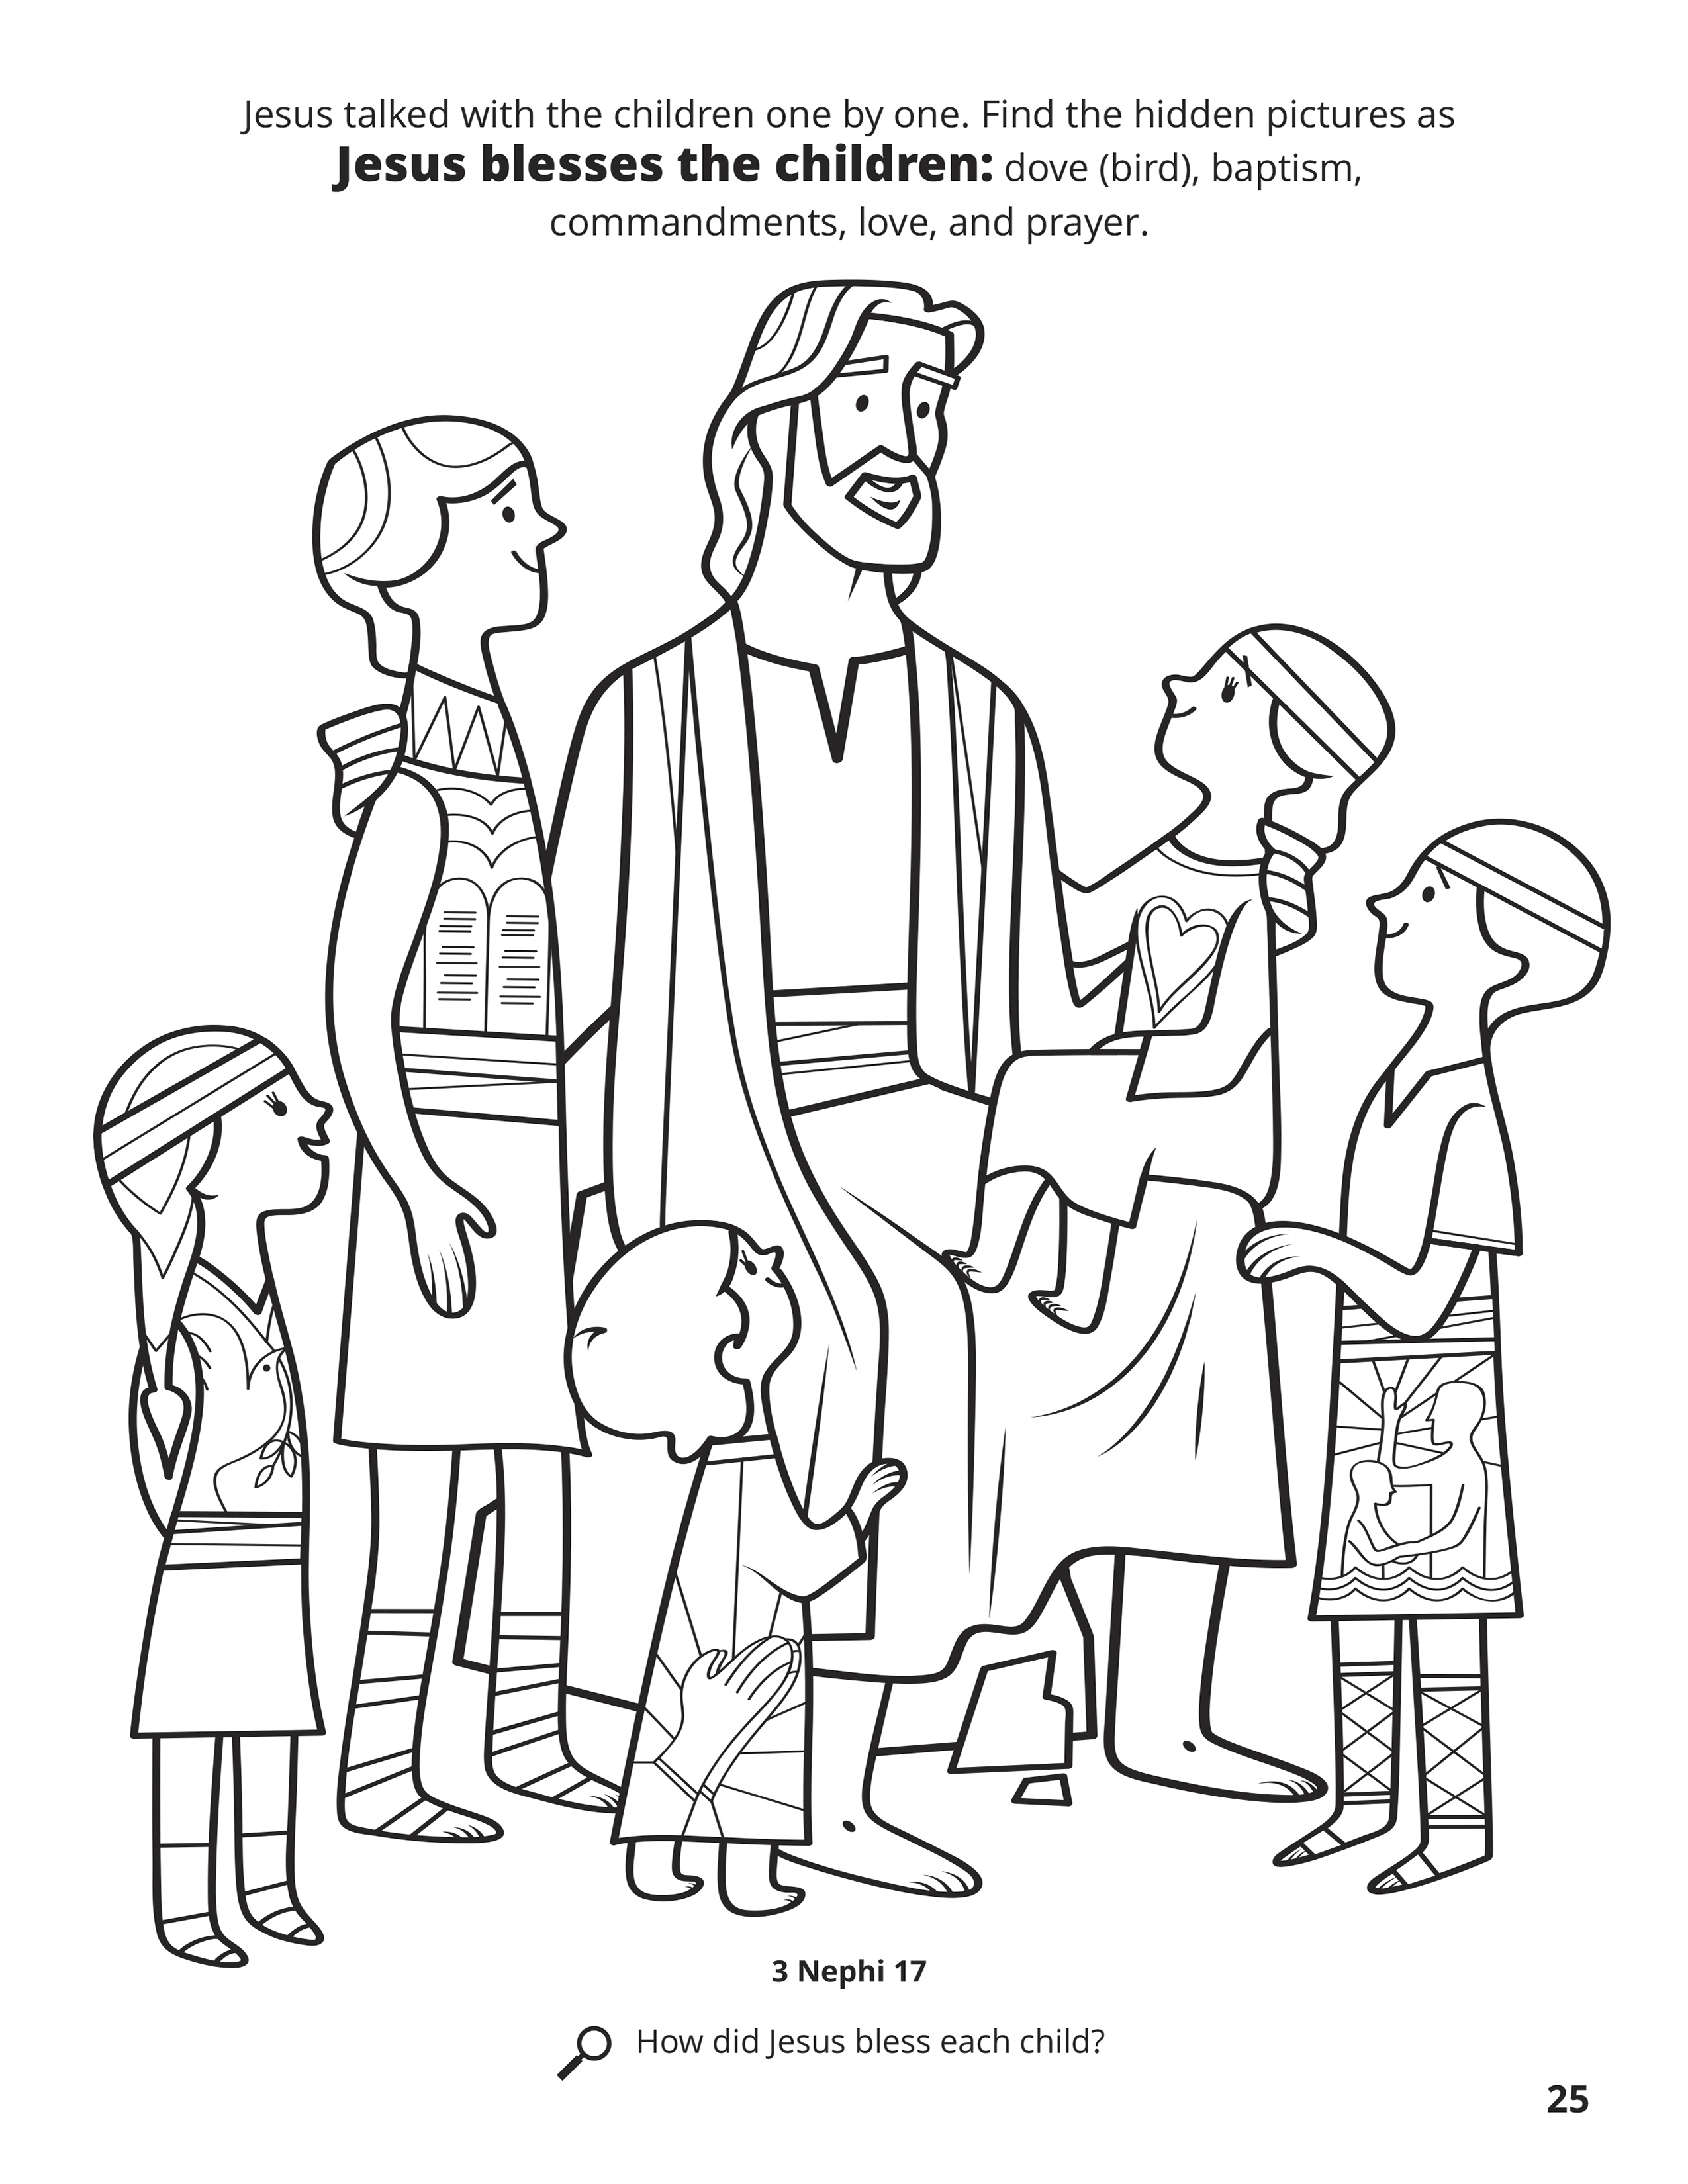 Jesus talked with the children one by one. Find the hidden pictures as Jesus blesses the children: dove (bird), baptism, commandments, love, and prayer. Location in the Scriptures: 3 Nephi 17. Search the Scriptures: How did Jesus bless each child?